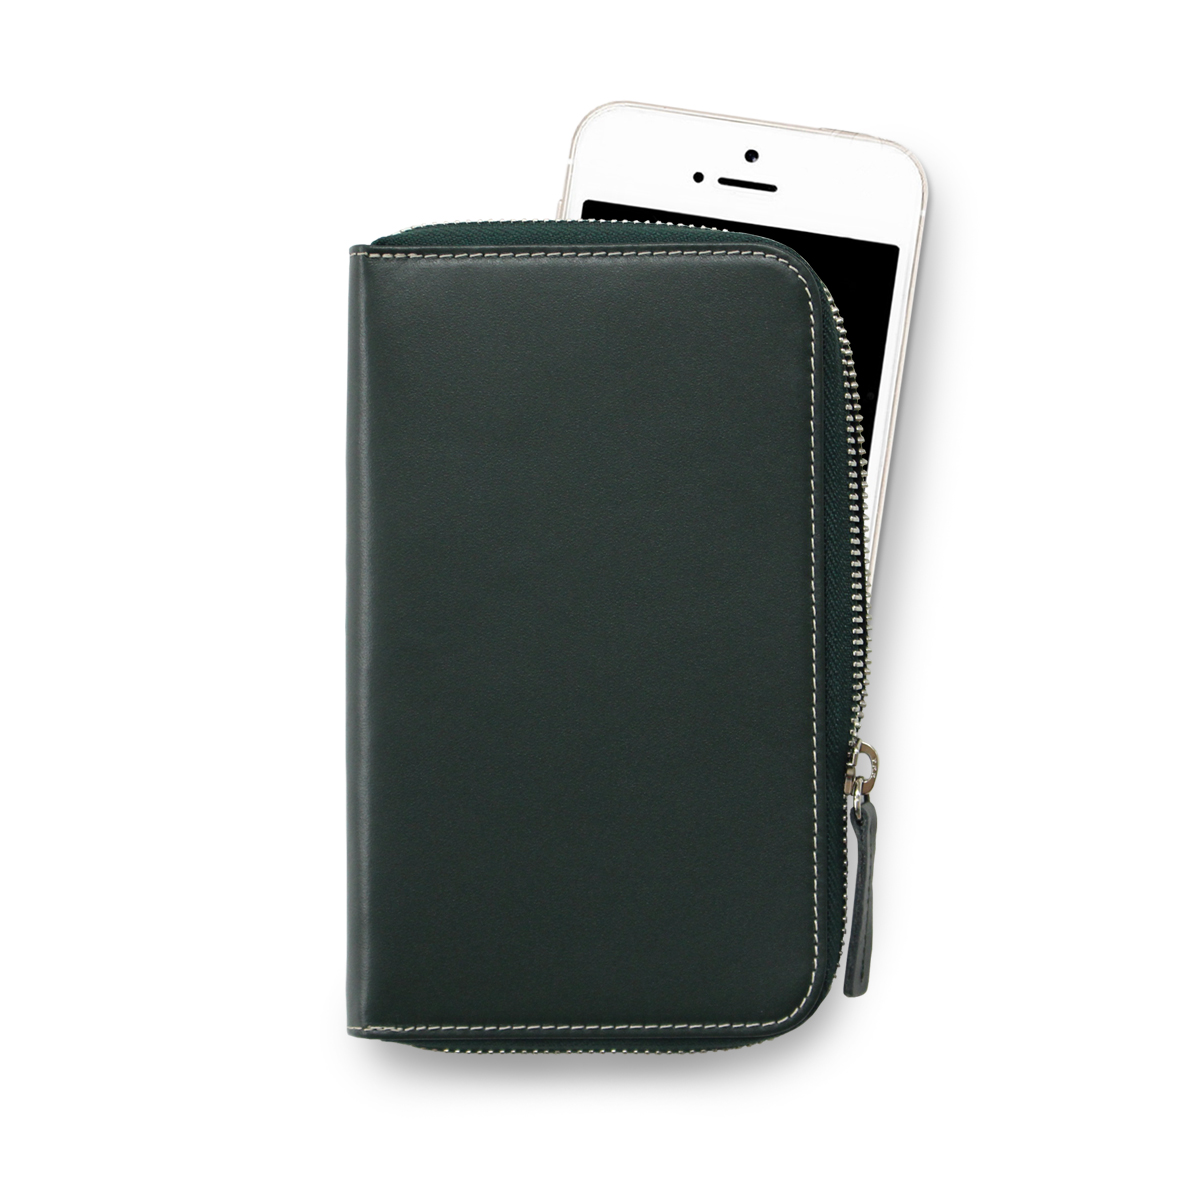 Daily Phone Pocket  Plus Deep Green